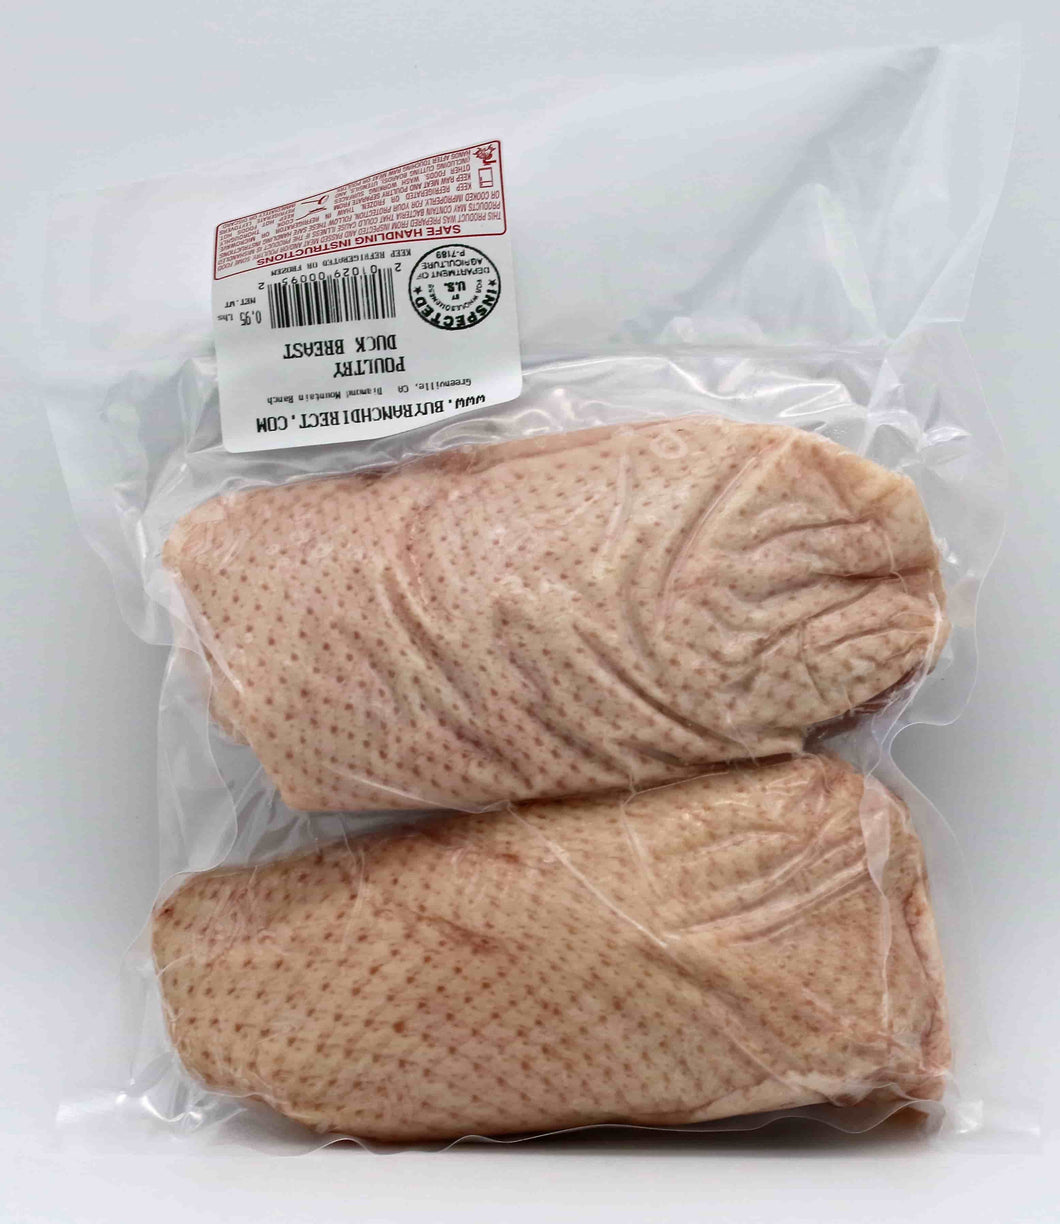 - Duck Breast, Double Pack - 1.0 lbs